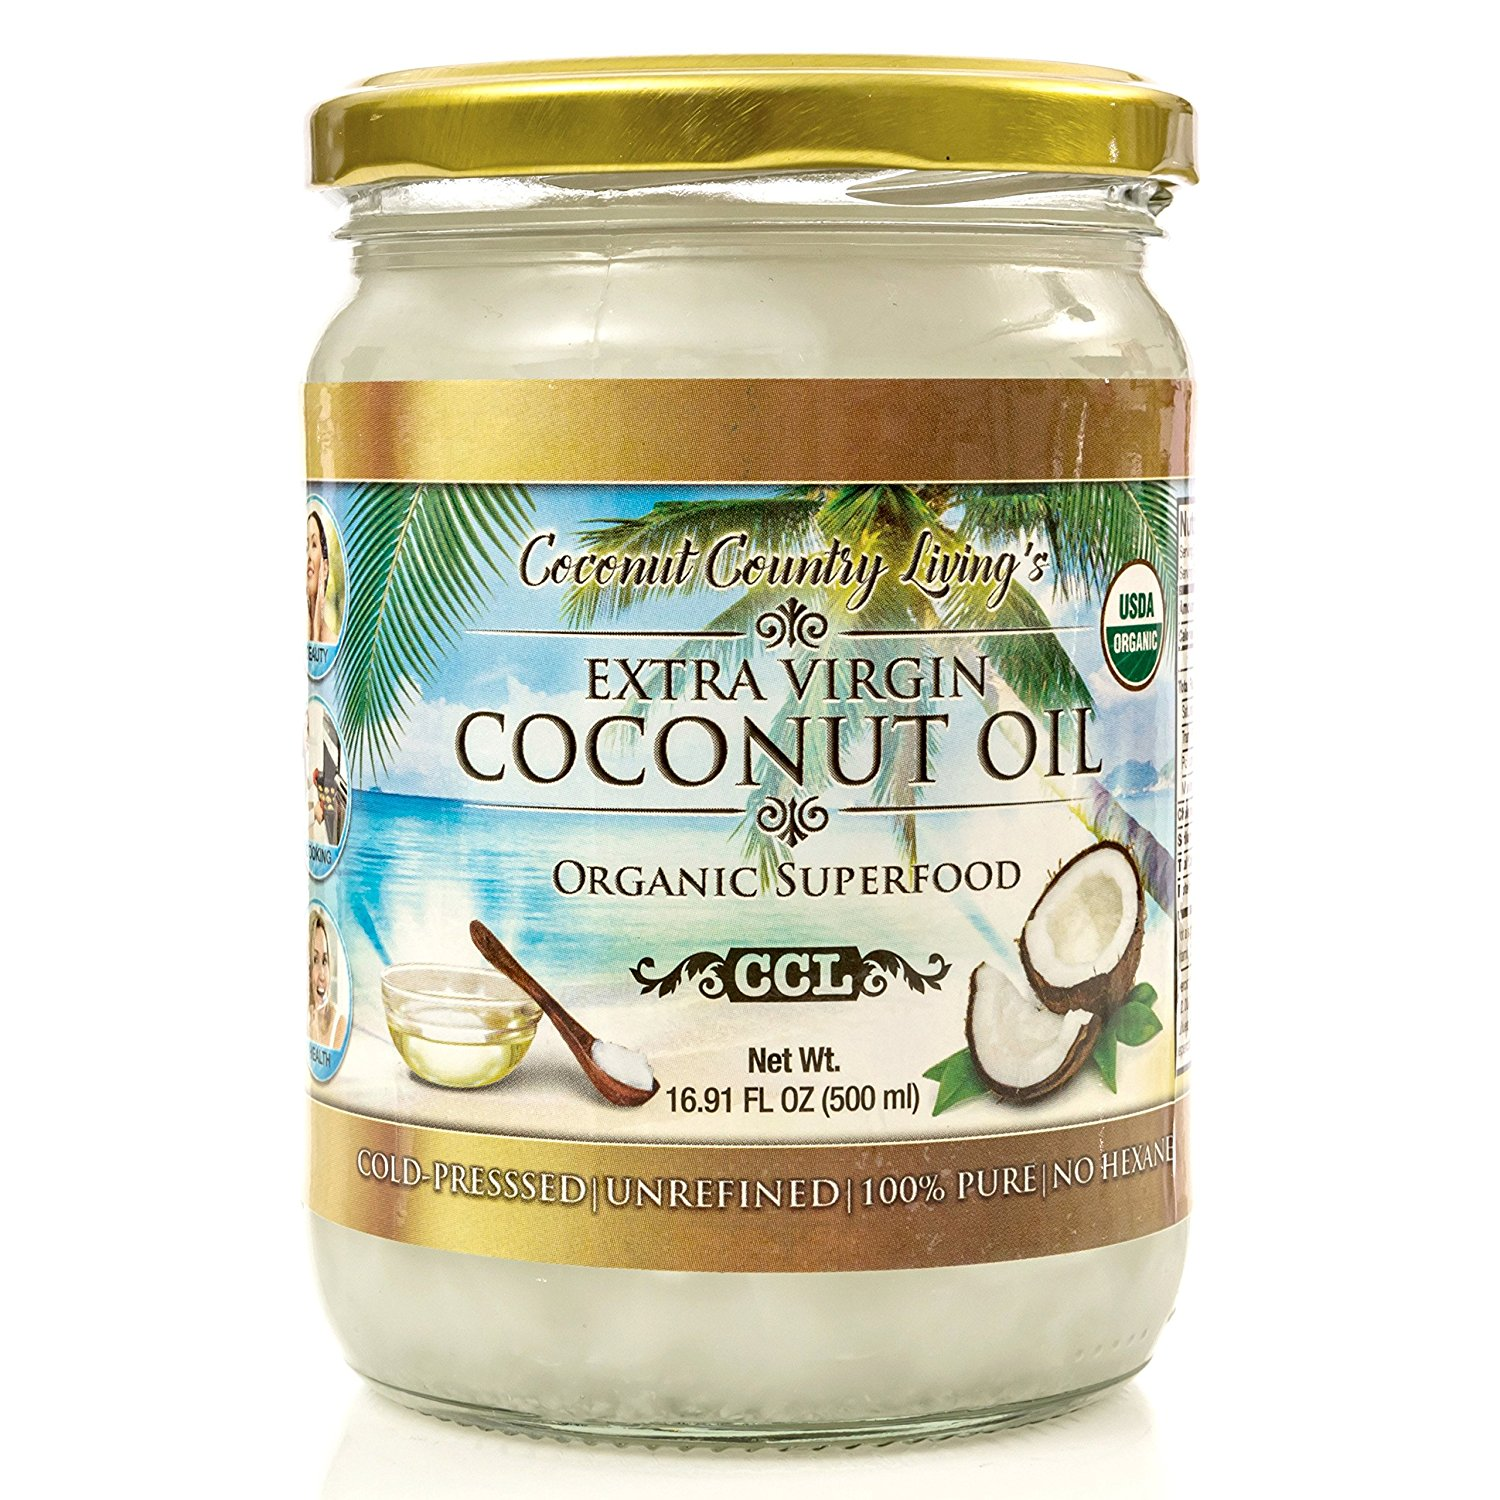 Organic Coconut Oil 16.91 oz